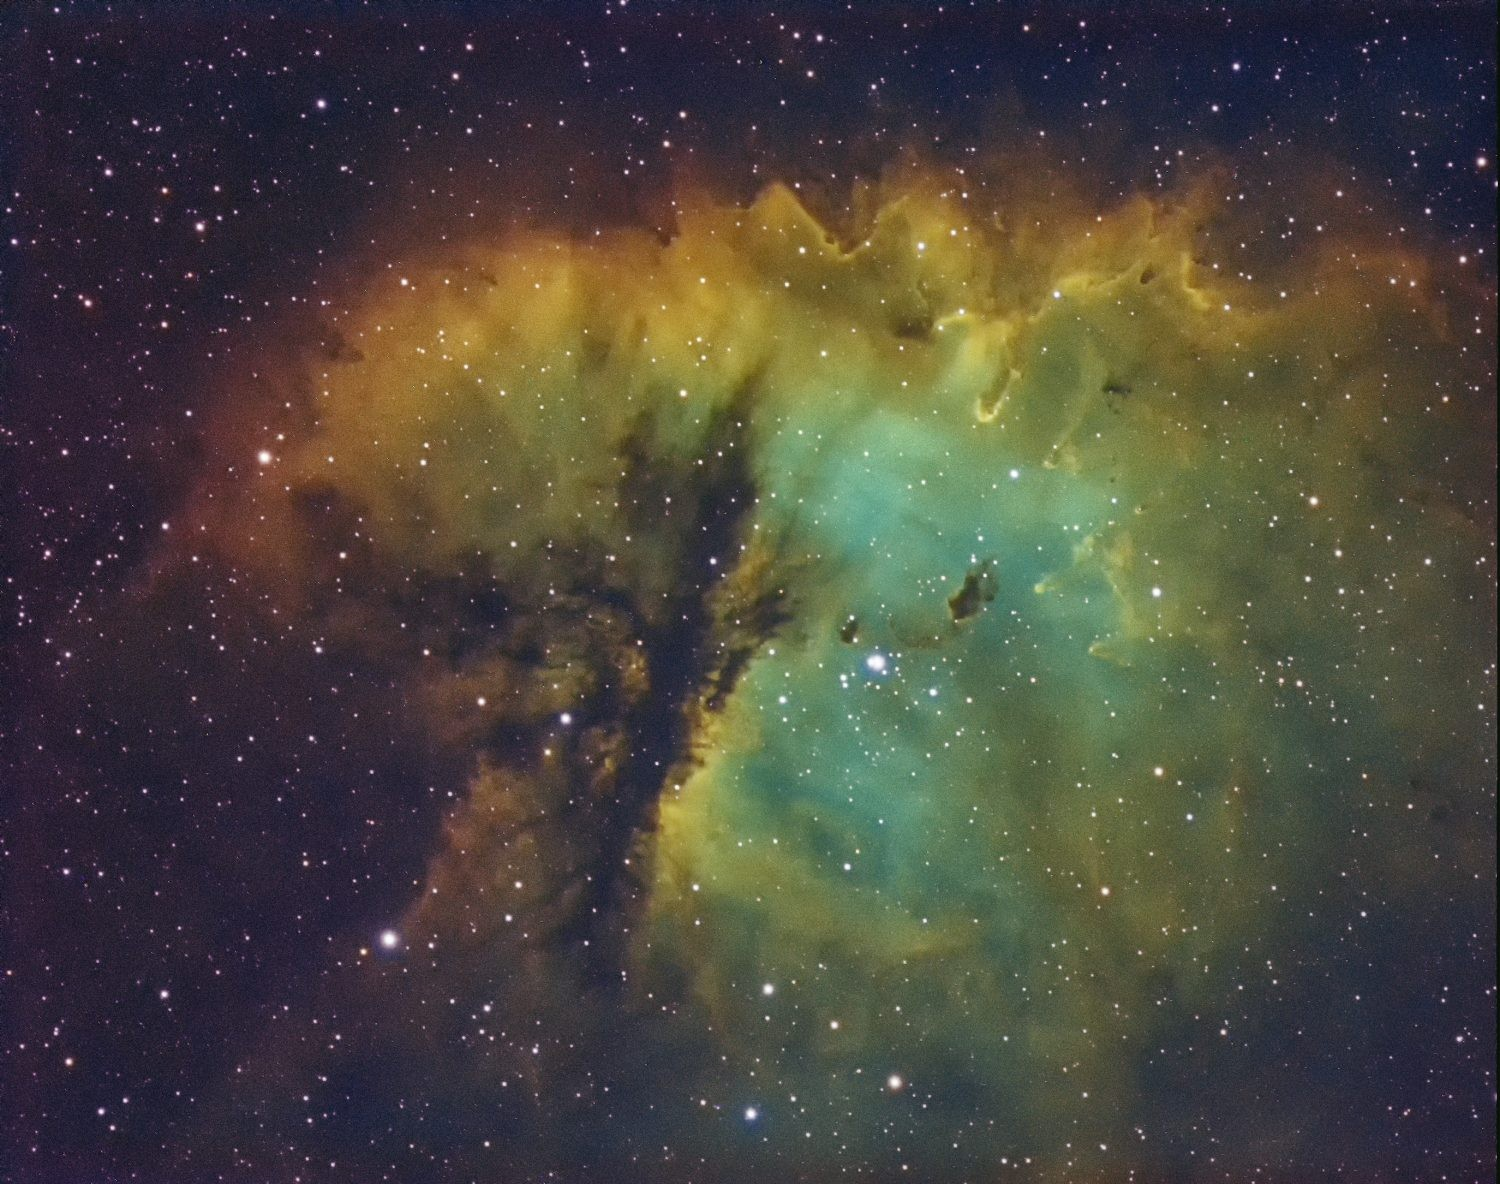 Tim Jardine's image of the Pacman Nebula. Credit: Tim Jardine